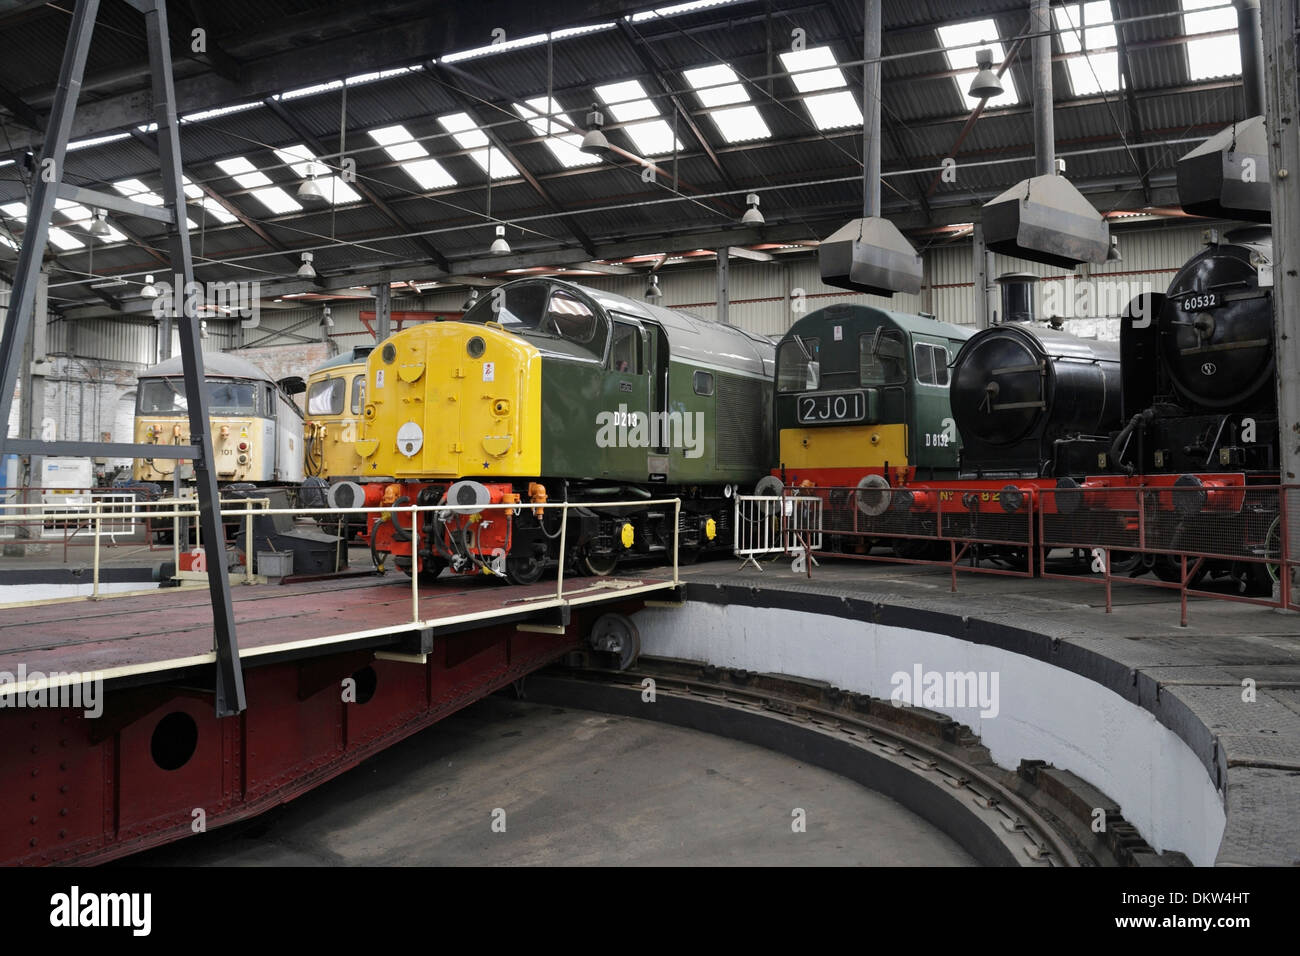 Barrow Hill Railway Engine shed Preserved Locomotives - Stock Image